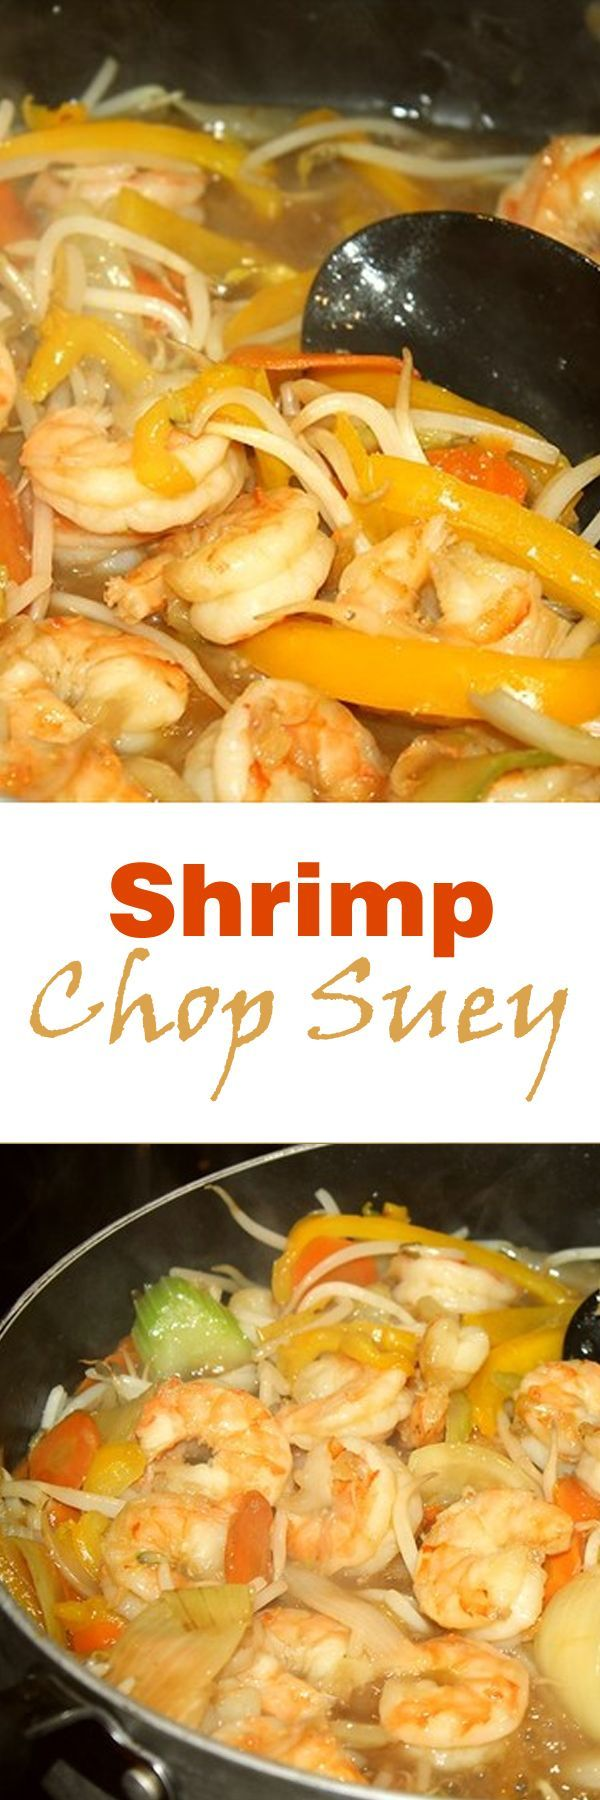 Shrimp Chop Suey-This recipe is easy to put together and one my family requests quite often. If gluten intolerant make sure you are using gluten free soy sauce. http://recipezazz.com